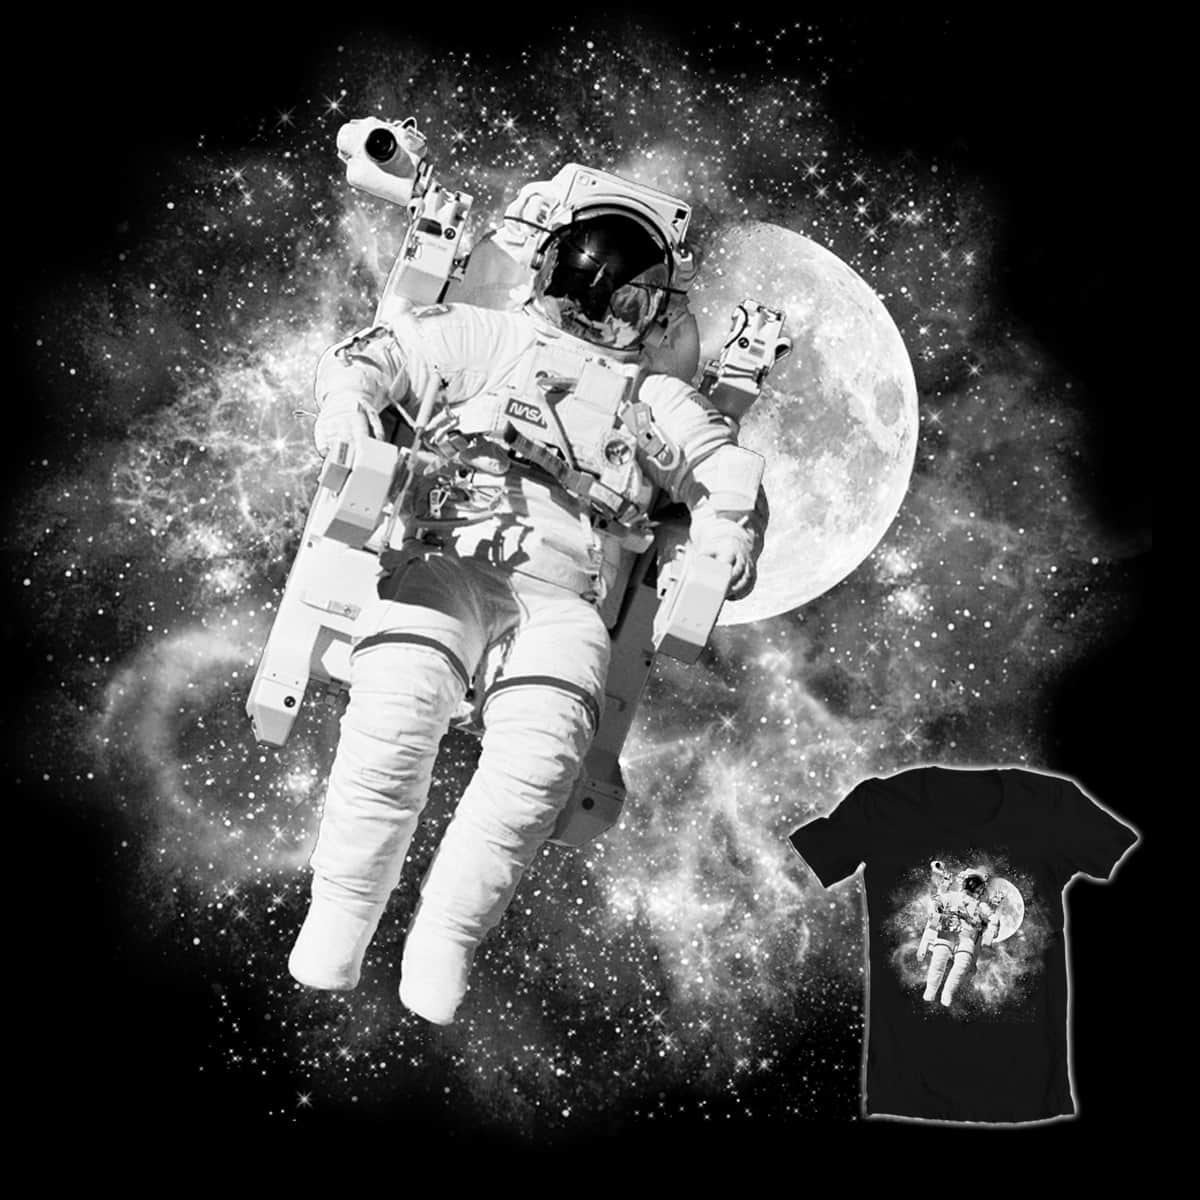 Lost in Space by PolySciGuy on Threadless